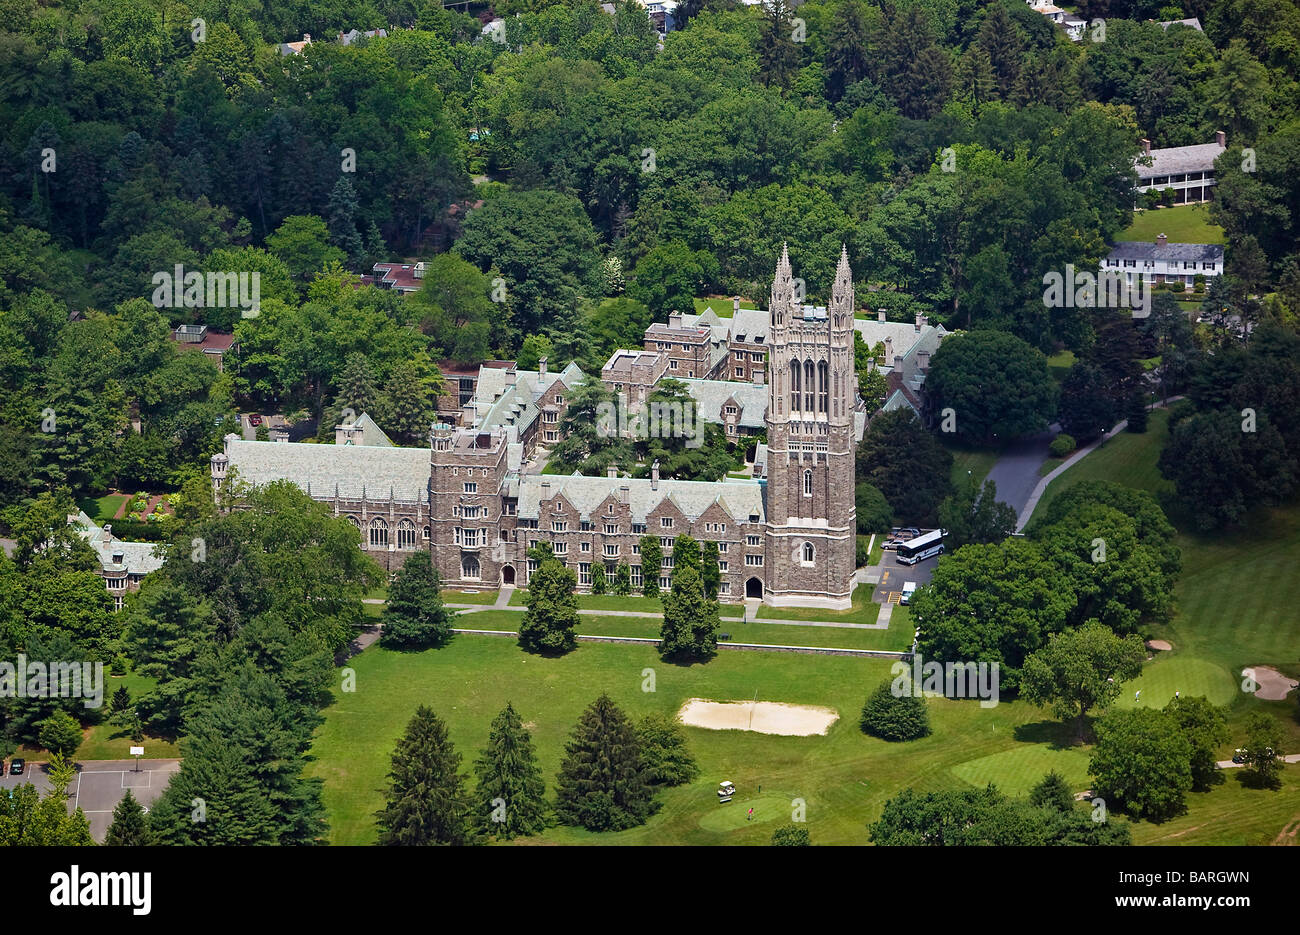 aerial view above graduate dormitory building golf course Princeton University - Stock Image